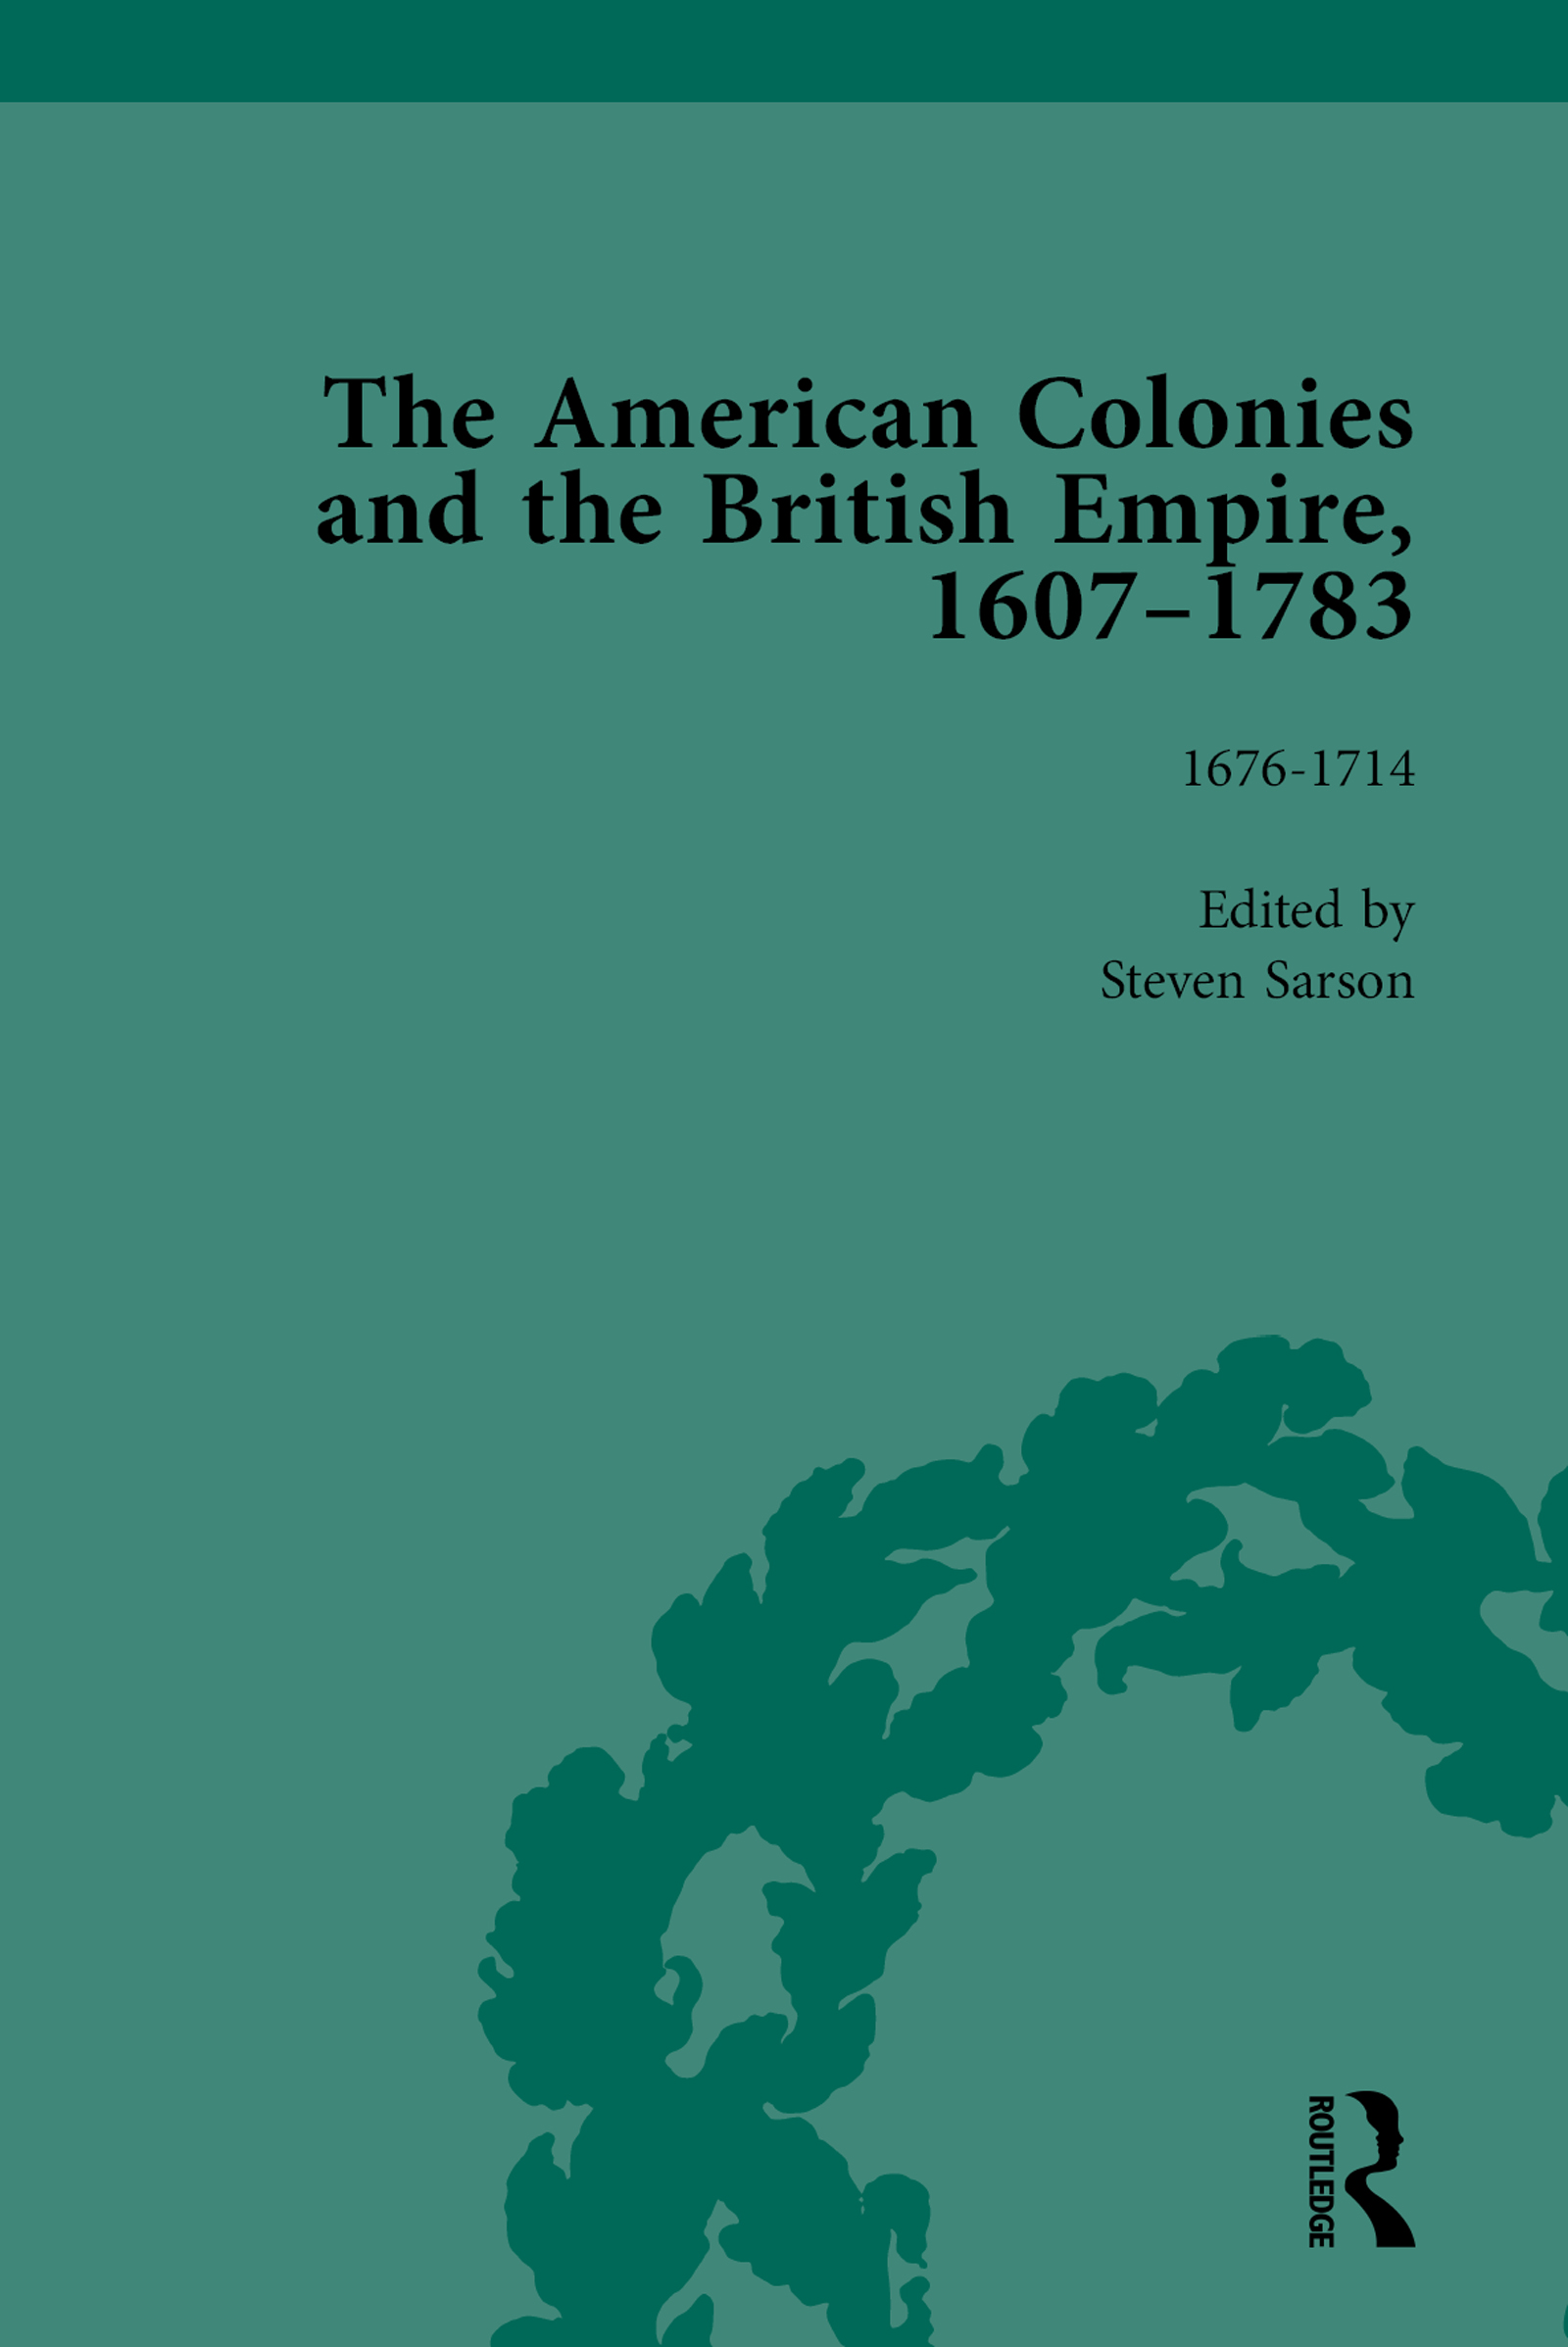 The American Colonies and the British Empire, 1607–1783